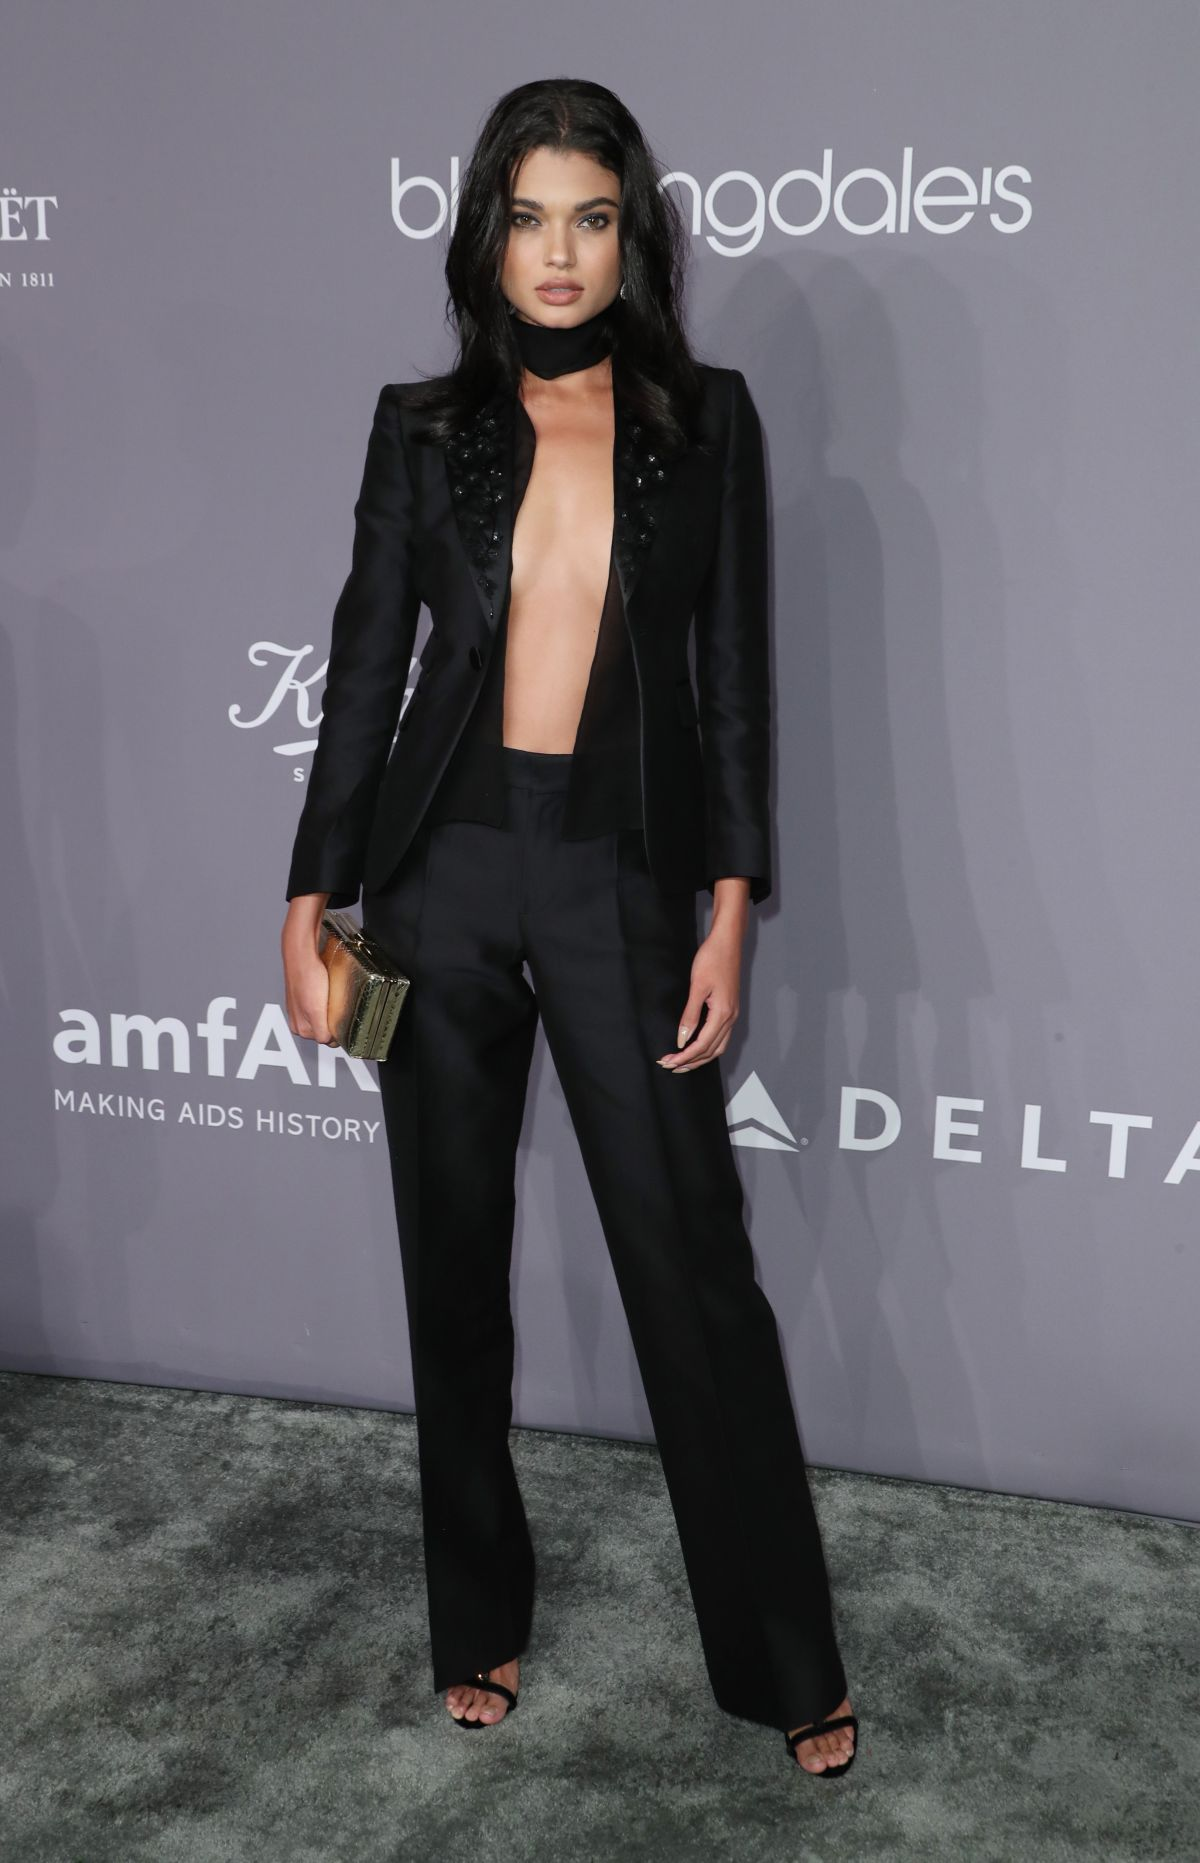 daniela-braga-at-amfar-gala-2018-in-new-york-02-07-2018-0.jpg